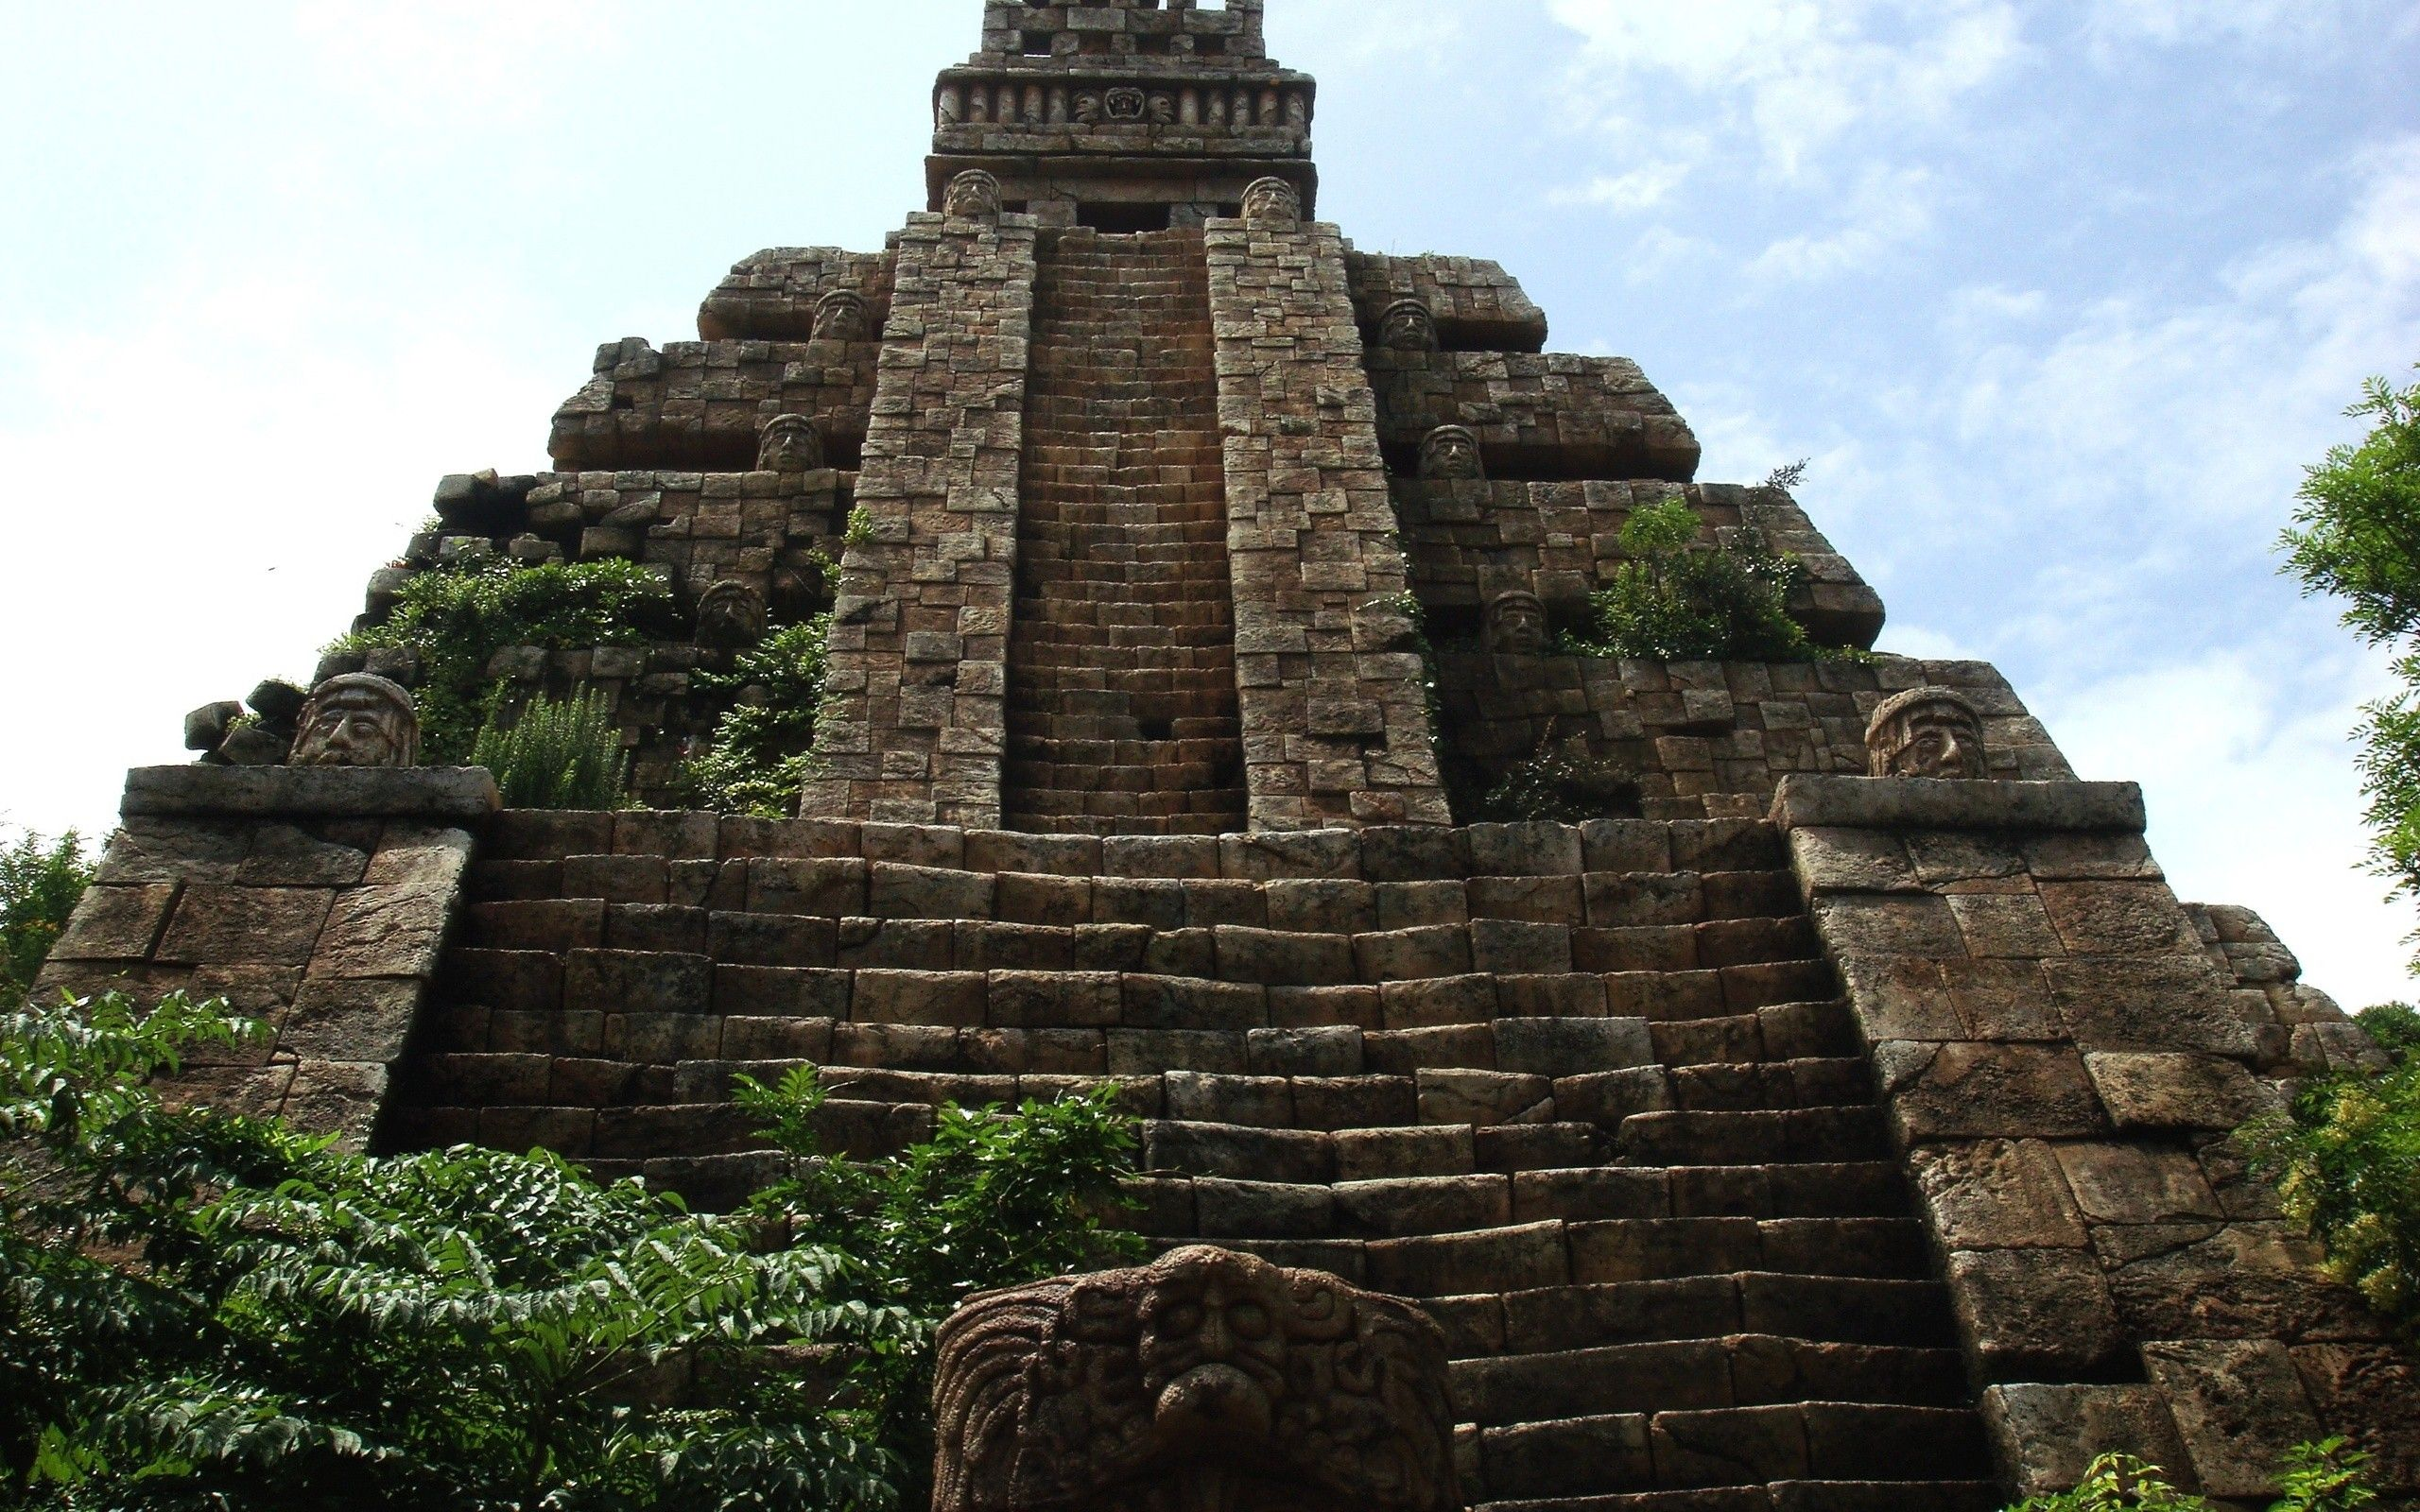 inside aztec temple - Google Search | Throne room ...